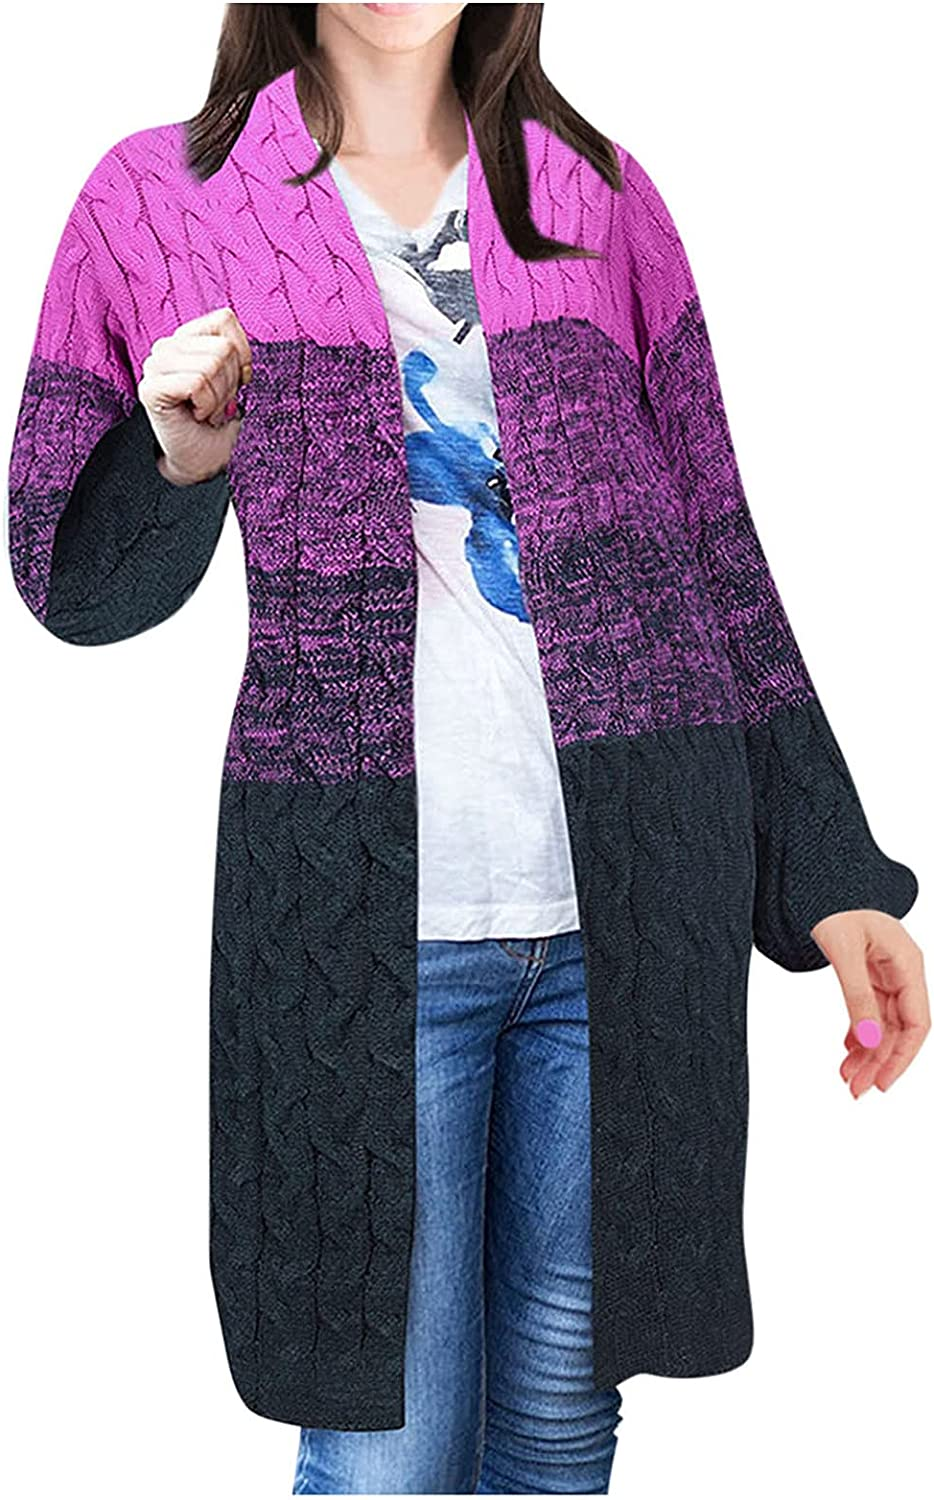 Popular shop is the lowest price challenge Womens Knit Cardigan Open Front Gradient Long Color Block Sleeve shop